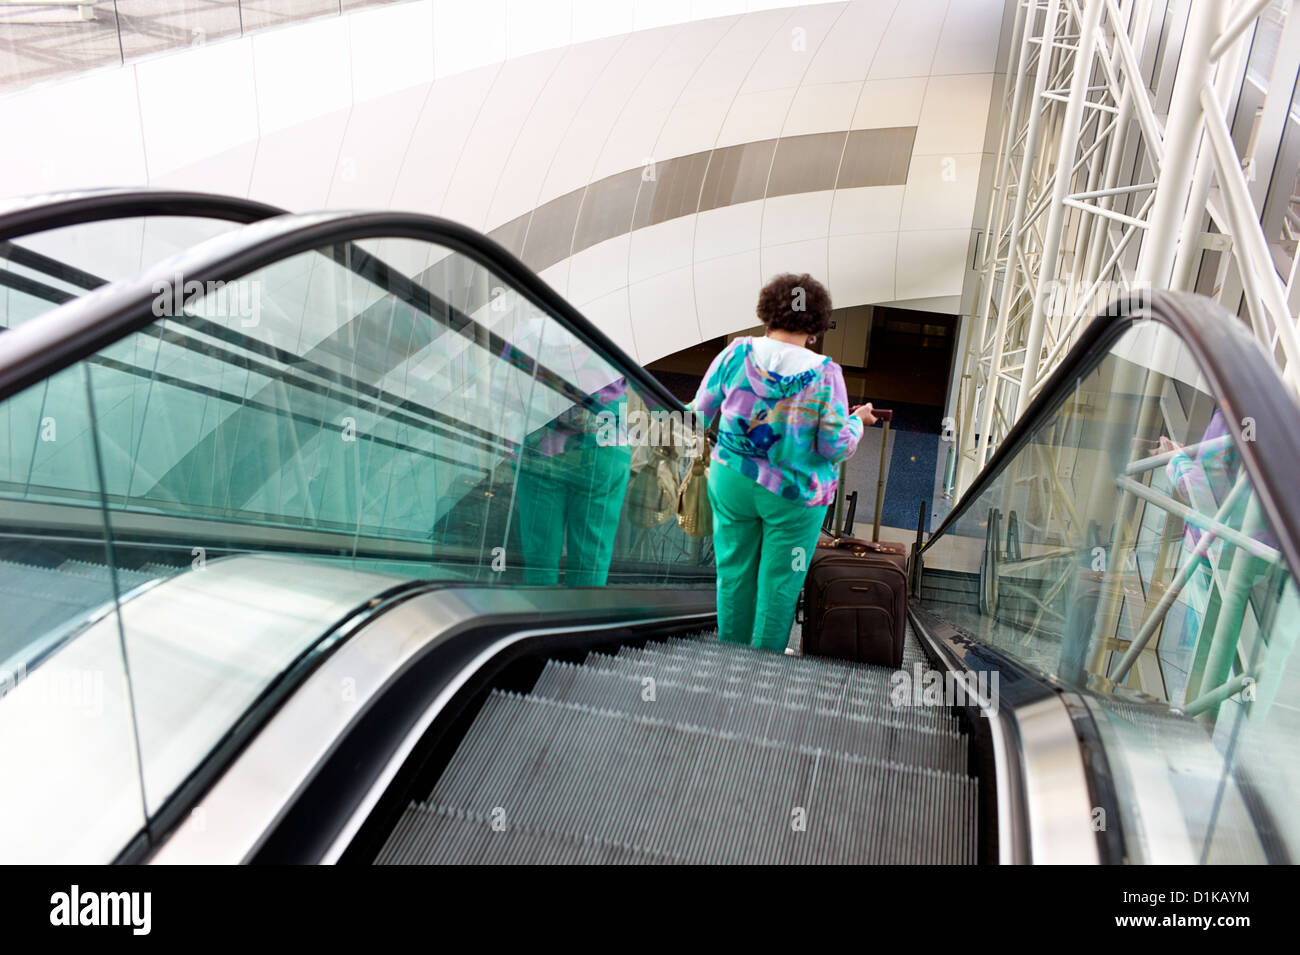 An overweight woman in tacky colors rides down the escalator at an airport - Stock Image